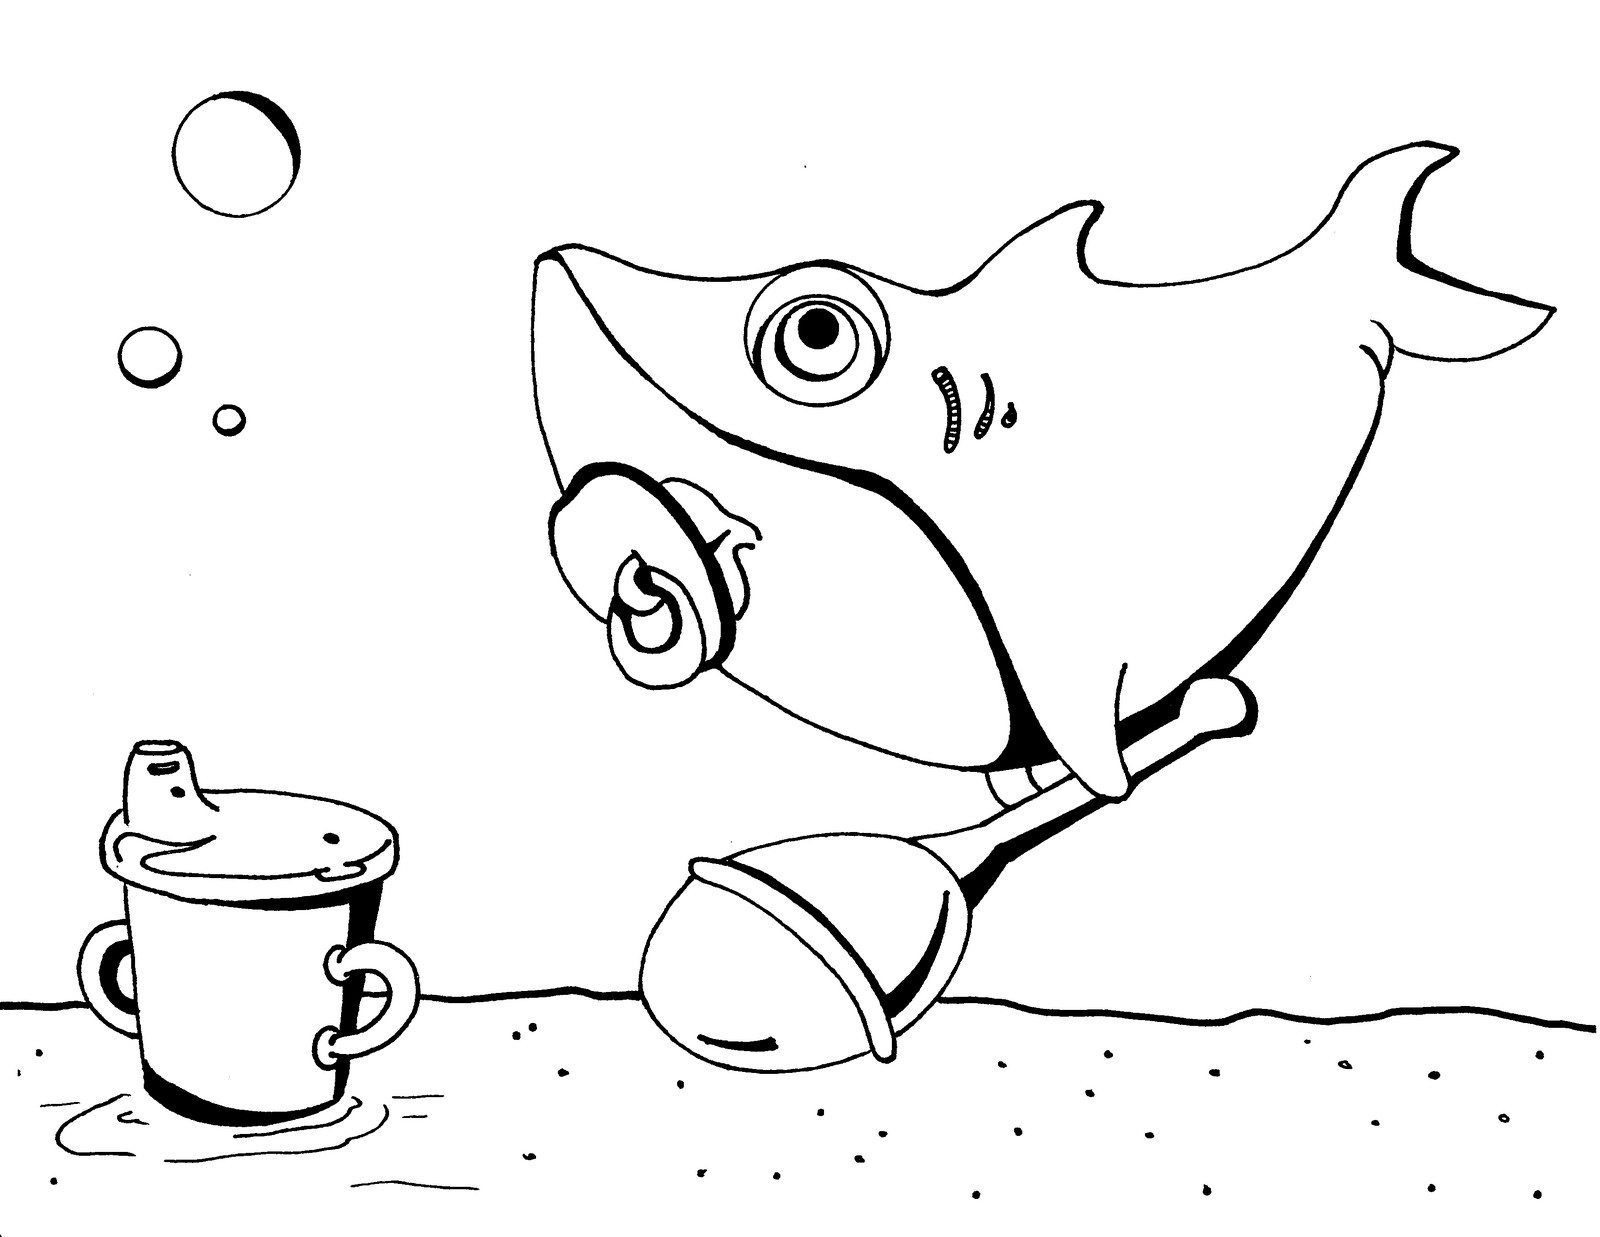 baby shark coloring pages the 21 best ideas for pinkfong baby shark coloring pages baby shark coloring pages